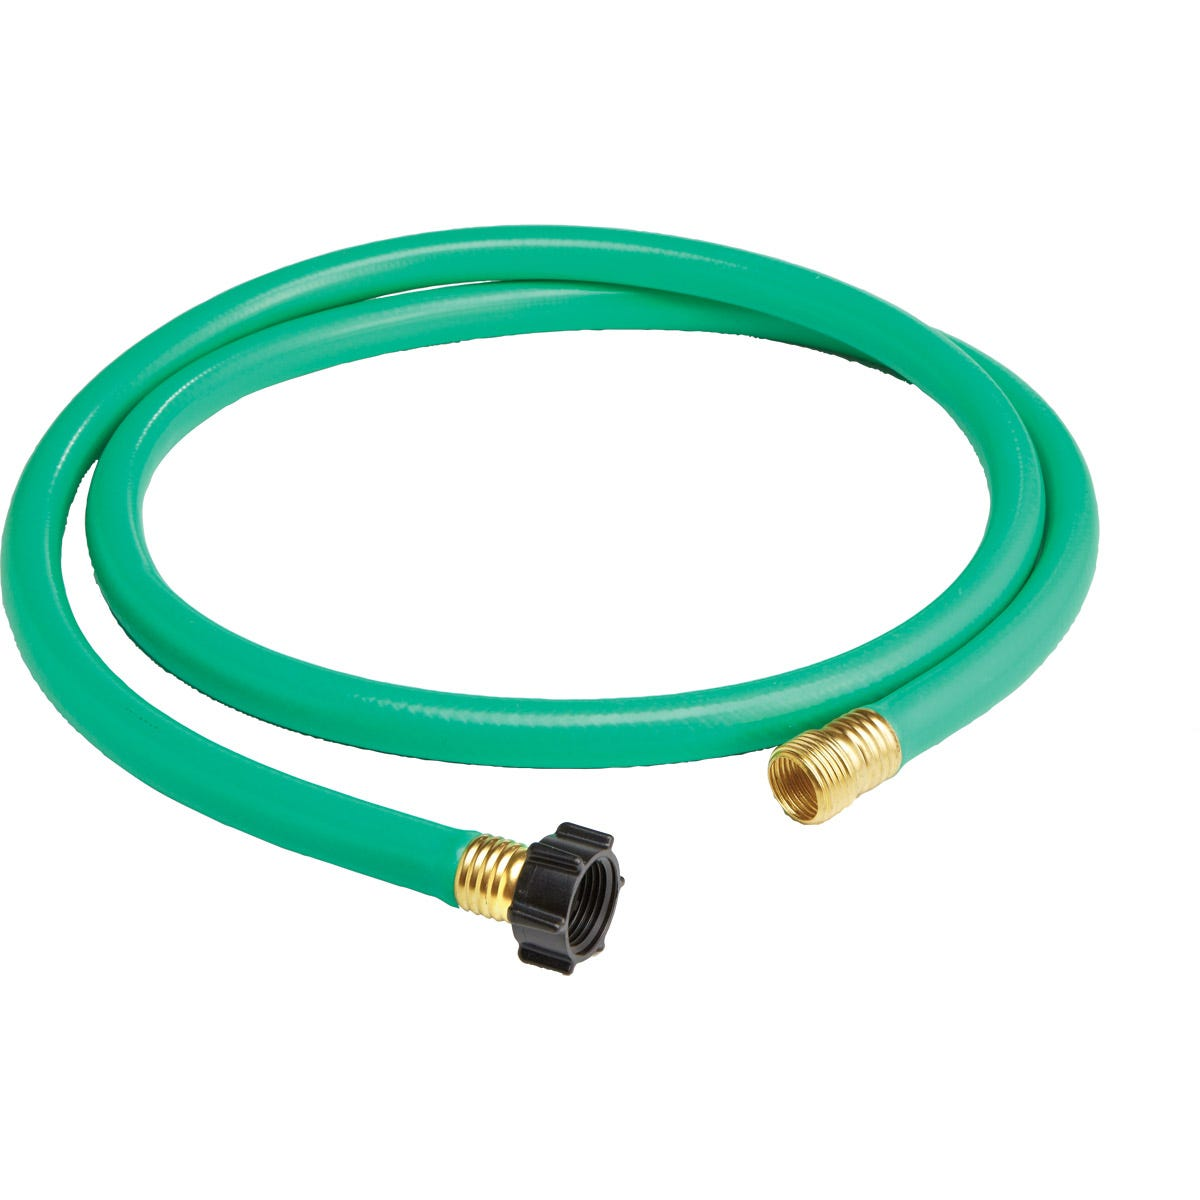 Leader Garden Hose 15 ft from Sportys Tool Shop